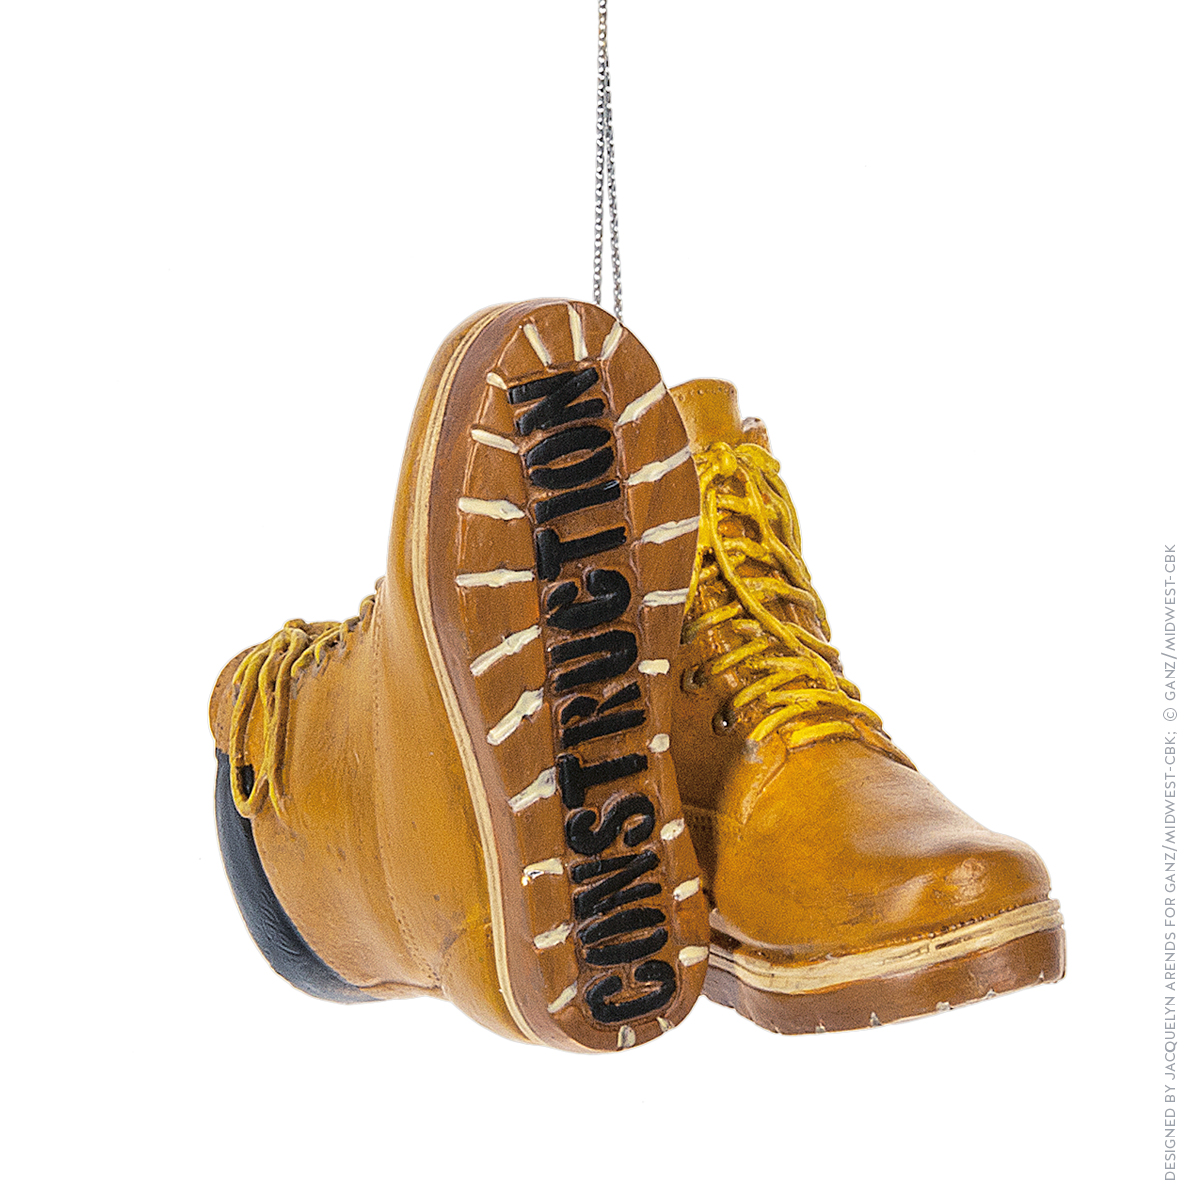 Specialty Ornaments Construction Boots ornament by Jacquelyn Arends; © Ganz/Midwest-CBK 2019